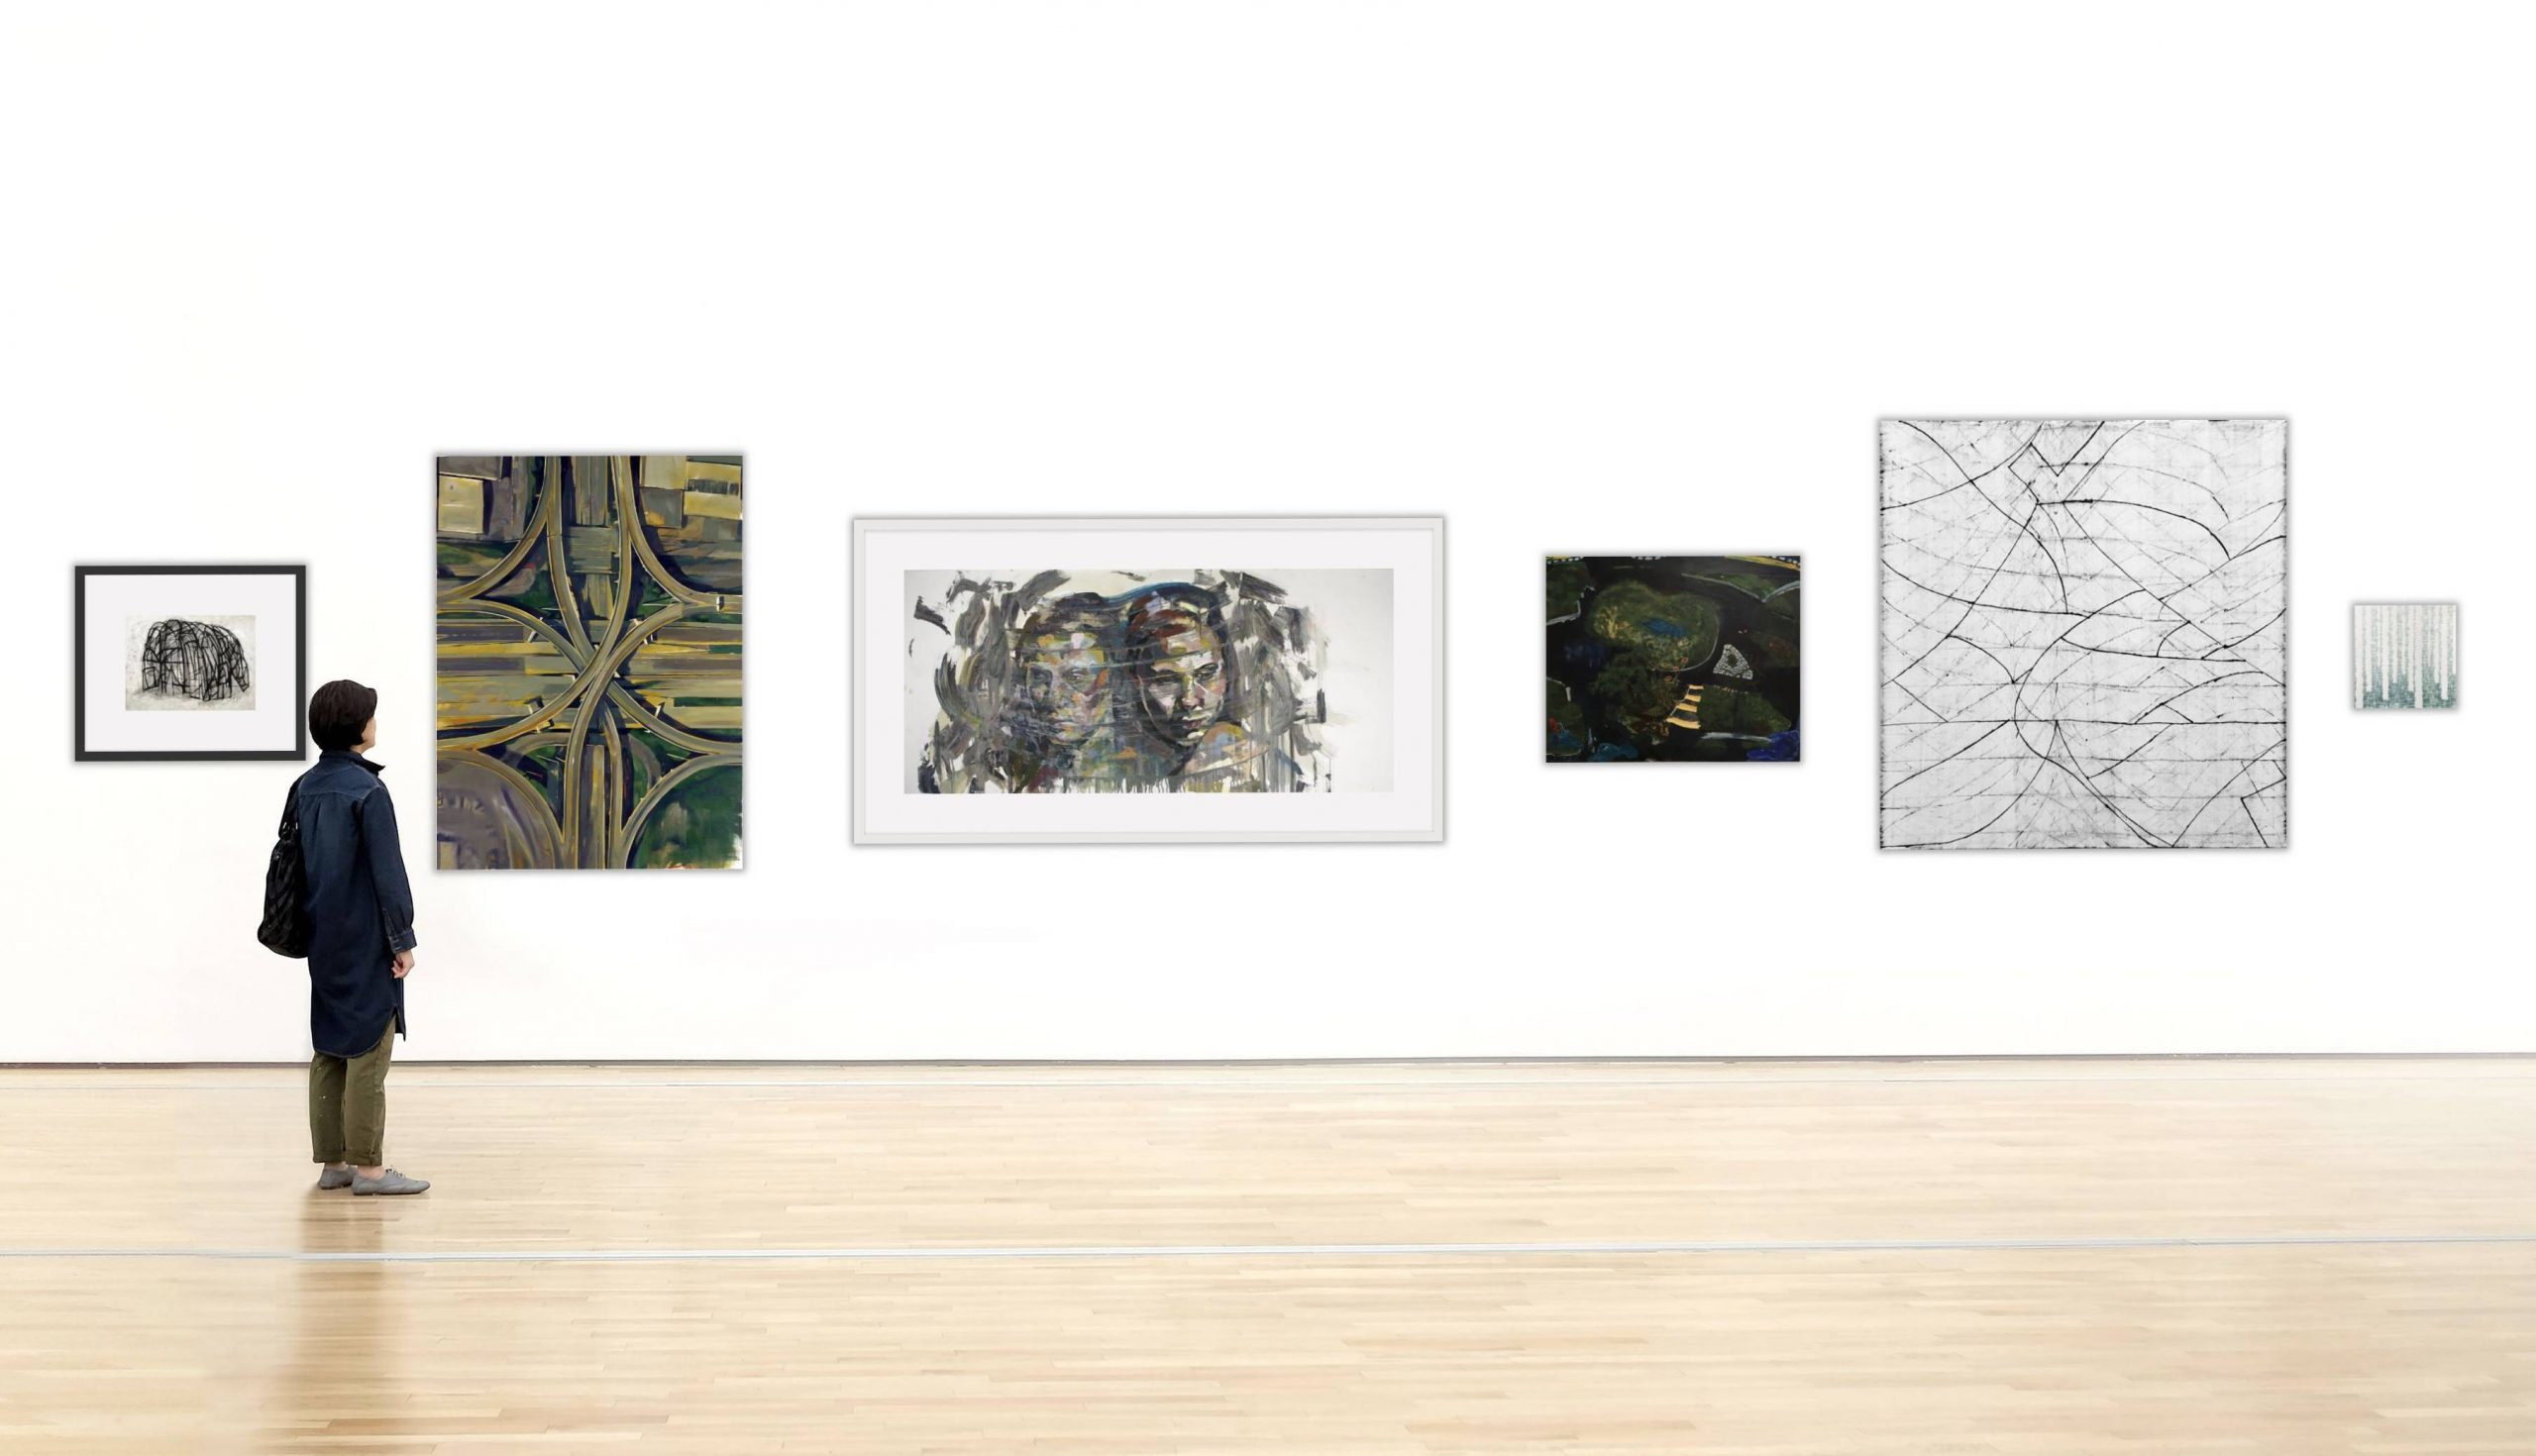 The 6 elements of abstract art